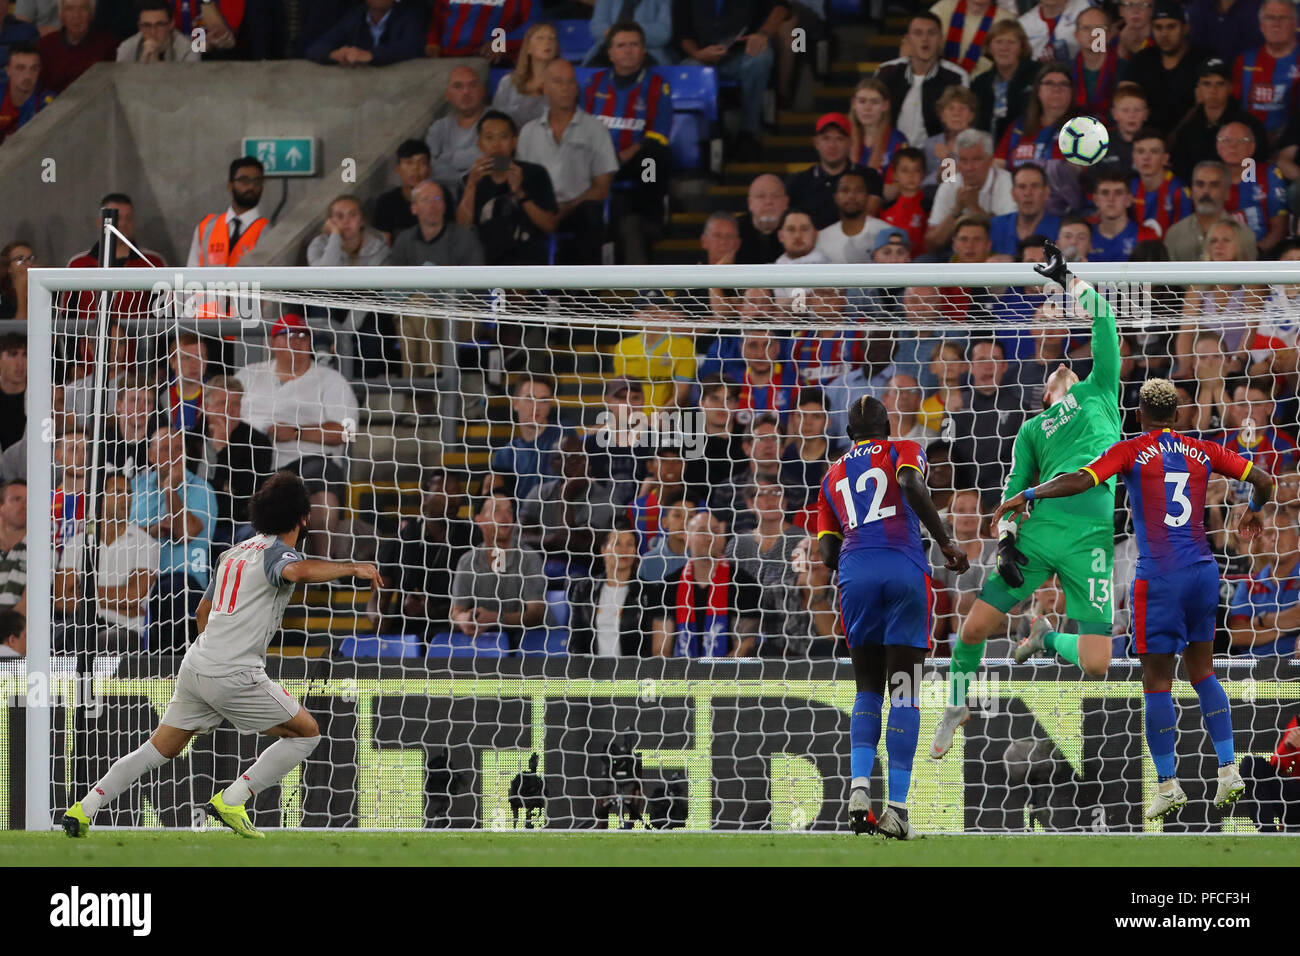 Wayne Hennessey of Crystal Palace tips over an effort from Mohamed Salah of Liverpool - Crystal Palace v Liverpool, Premier League, Selhurst Park, London (Selhurst) - 20th August 2018 Stock Photo